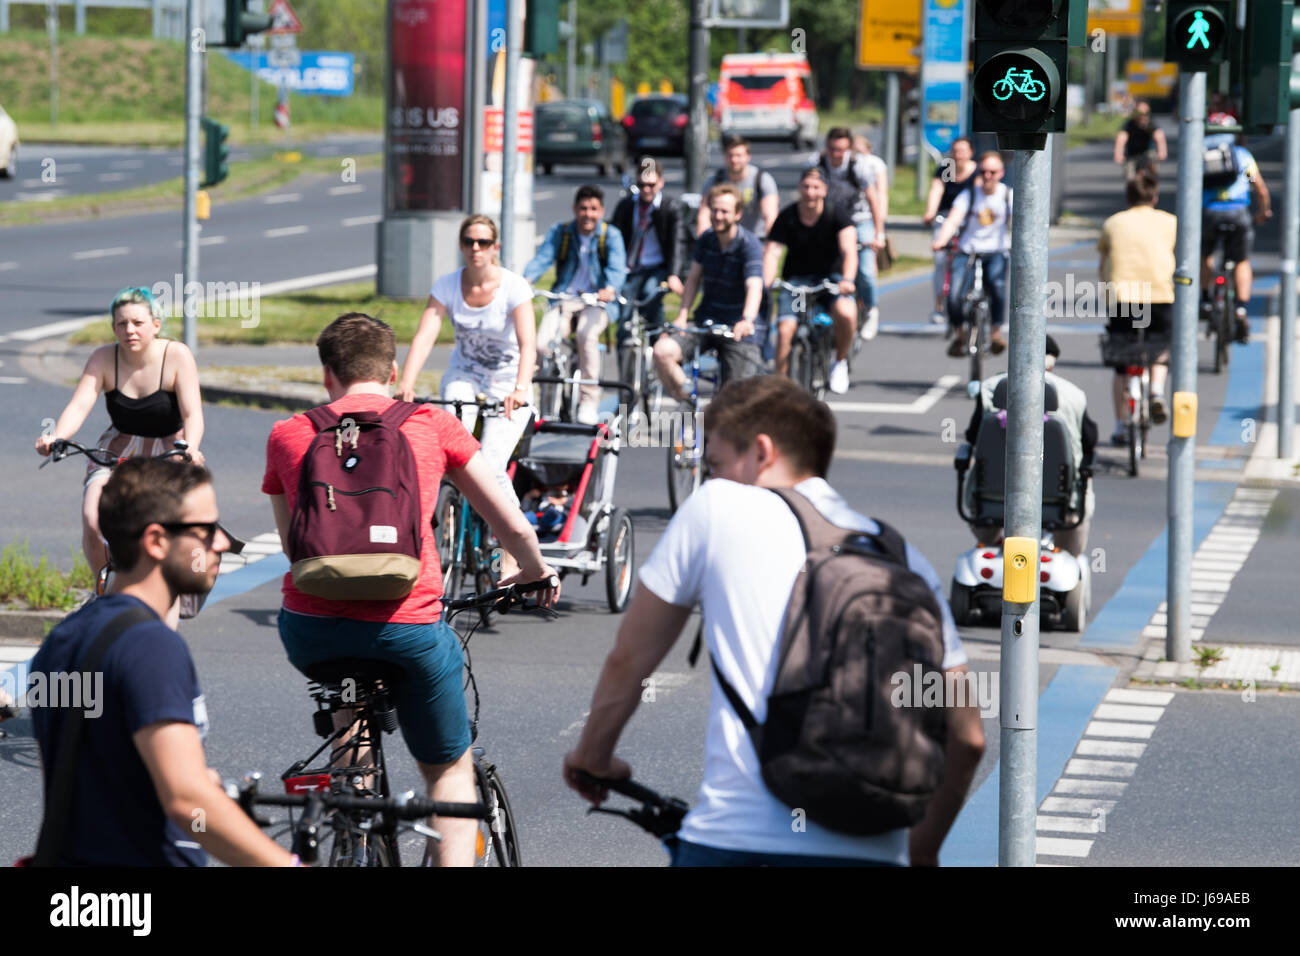 Cyclists make their way along the cycling expressway in Goettingen, Germany, 18 May 2017. Photo: Swen Pförtner/dpa - Stock Image